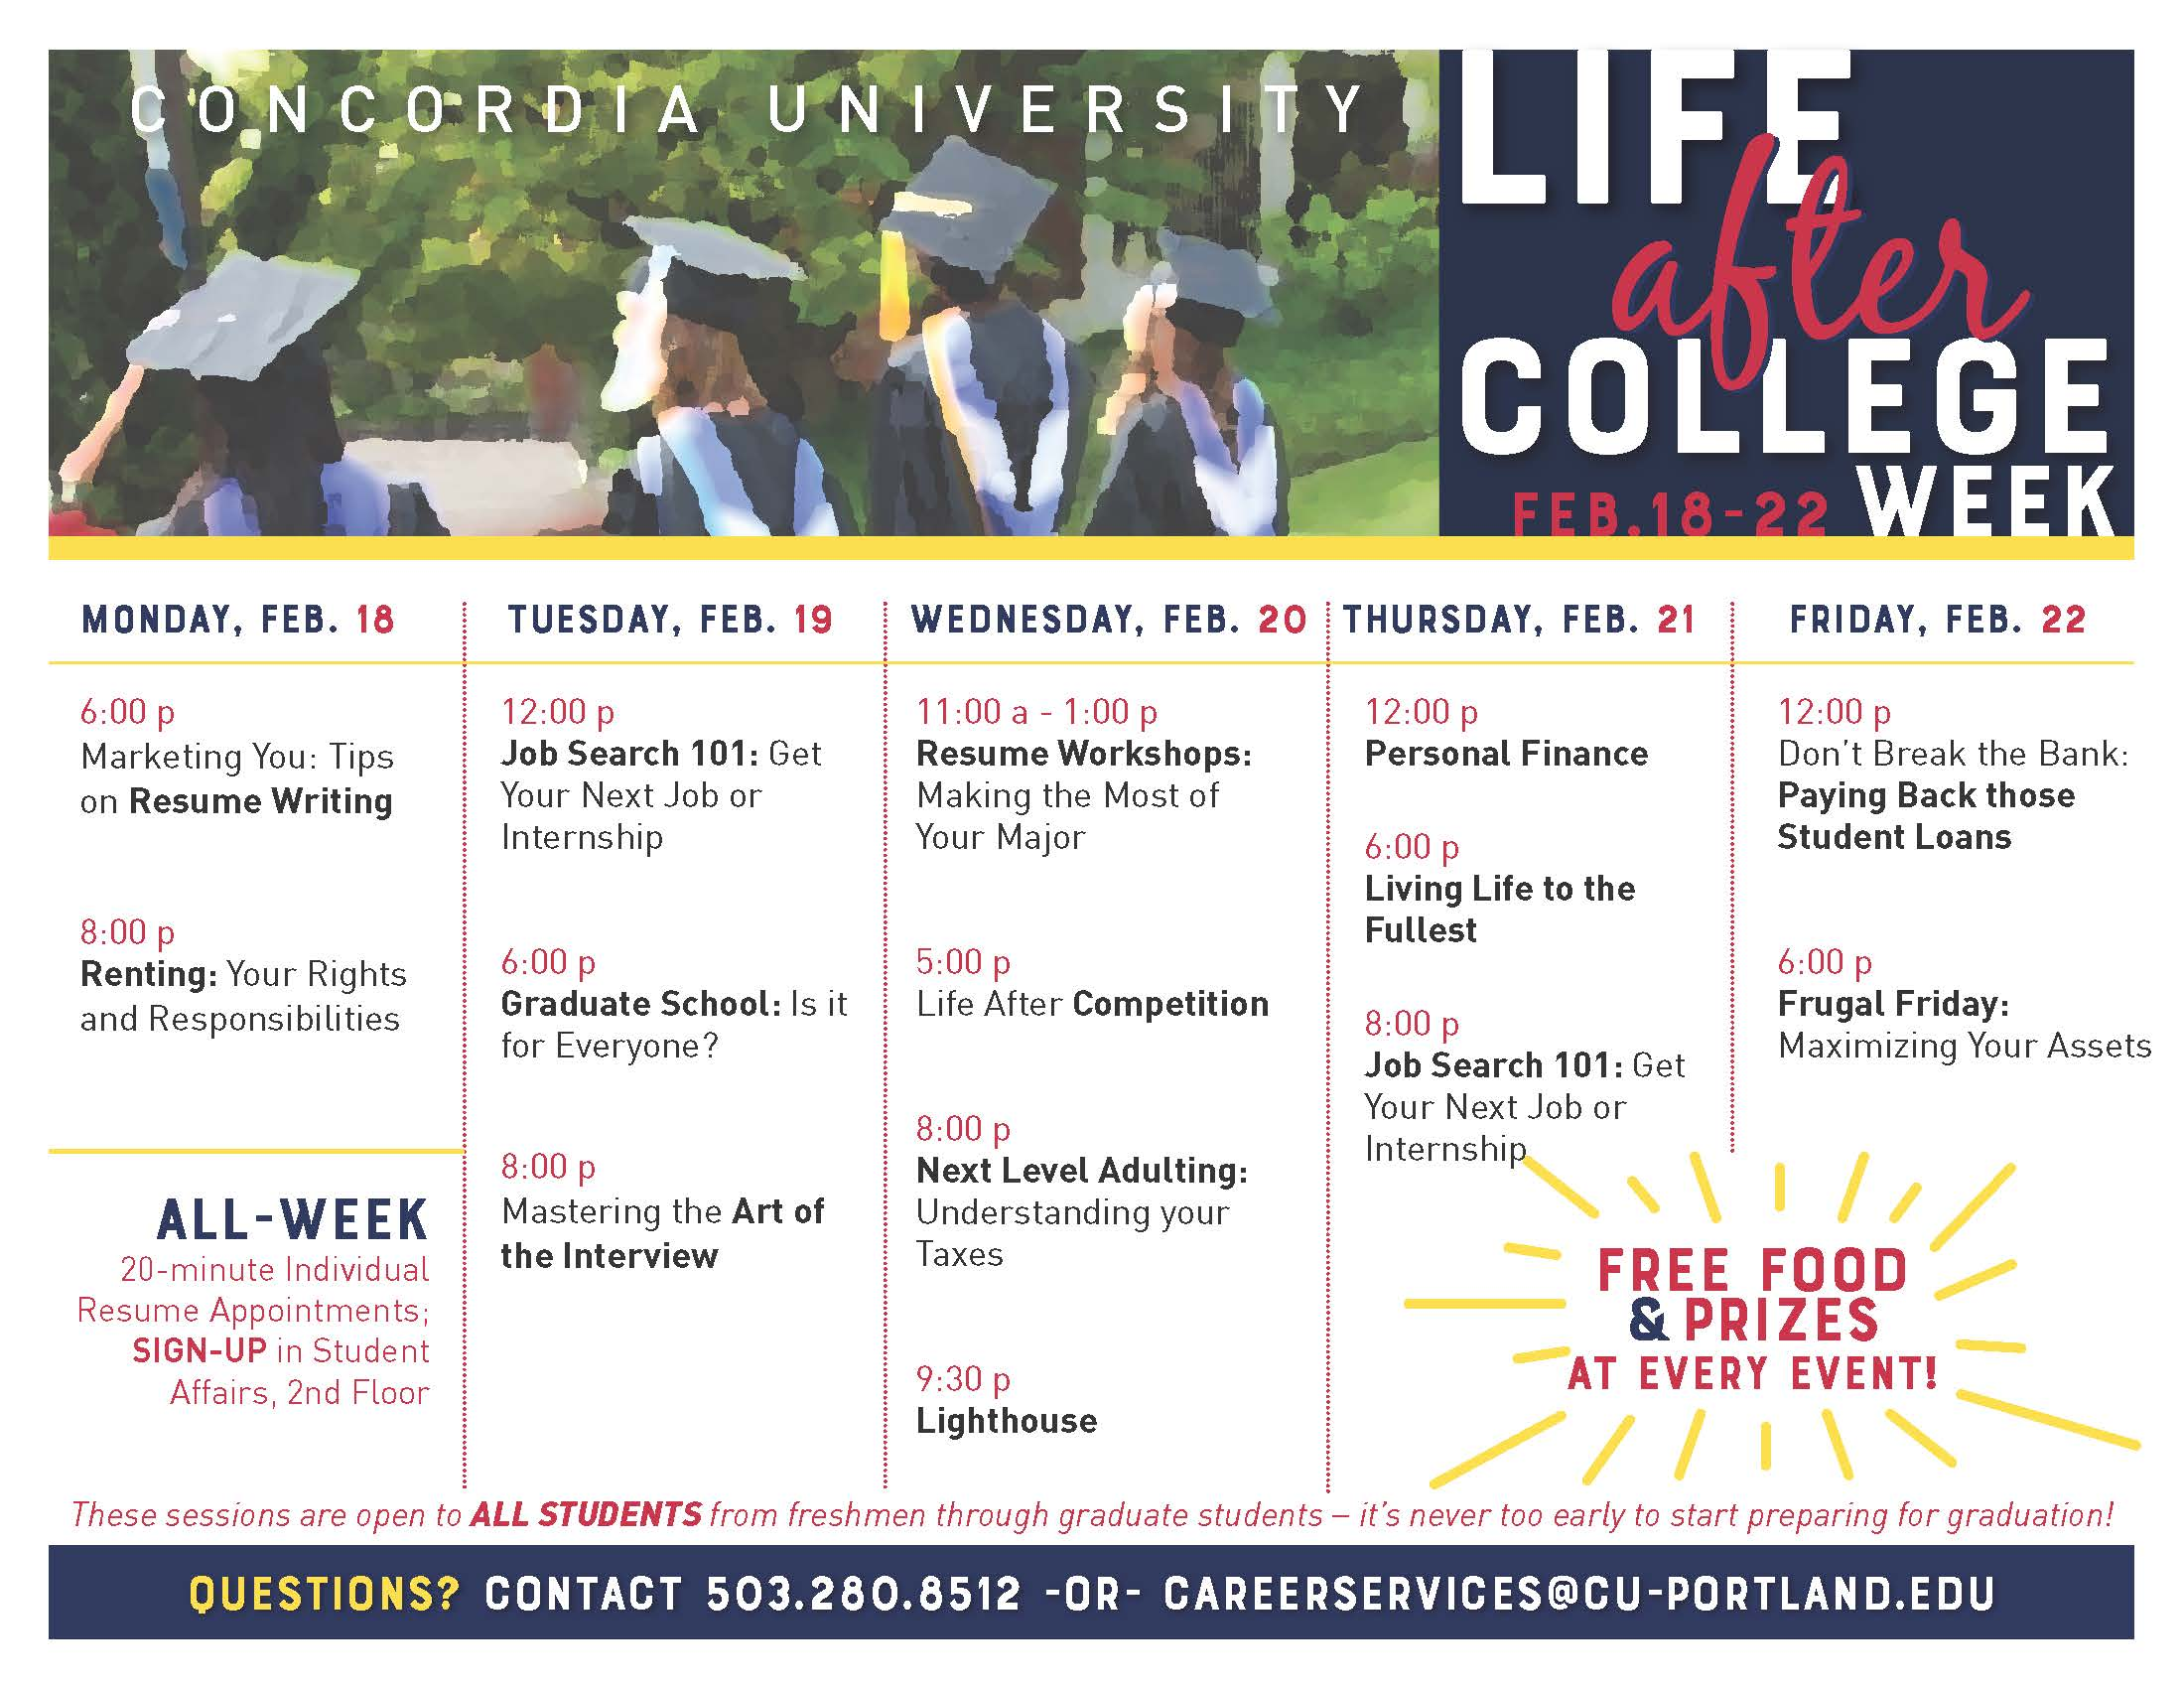 To see the most current calendar of events, go to https://www.cu-portland.edu/student-affairs/career-services/events